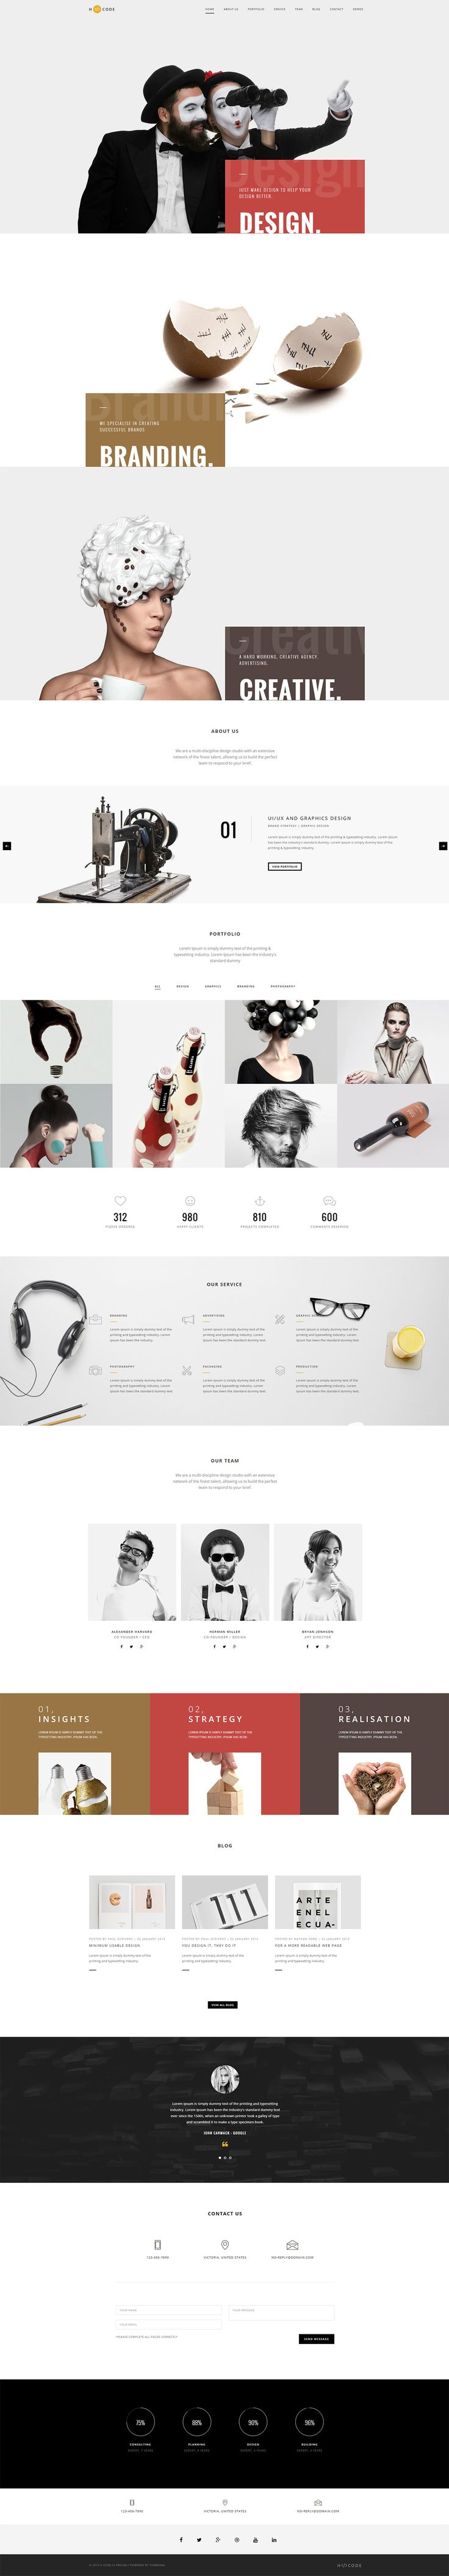 'H-Code' is a robust HTML template with tons of One Page template options. To give us a better feel of the template there are pre-made demos for fashion, architecture, digital agency, restaurant, travel agency, corporate, wedding, personal and many more. The restaurant demo is my favorite, especially the intro slideshow animations. The 'H-Code' template currently has a 5 star rating on ThemeForest so you know you are in safe hands with support.